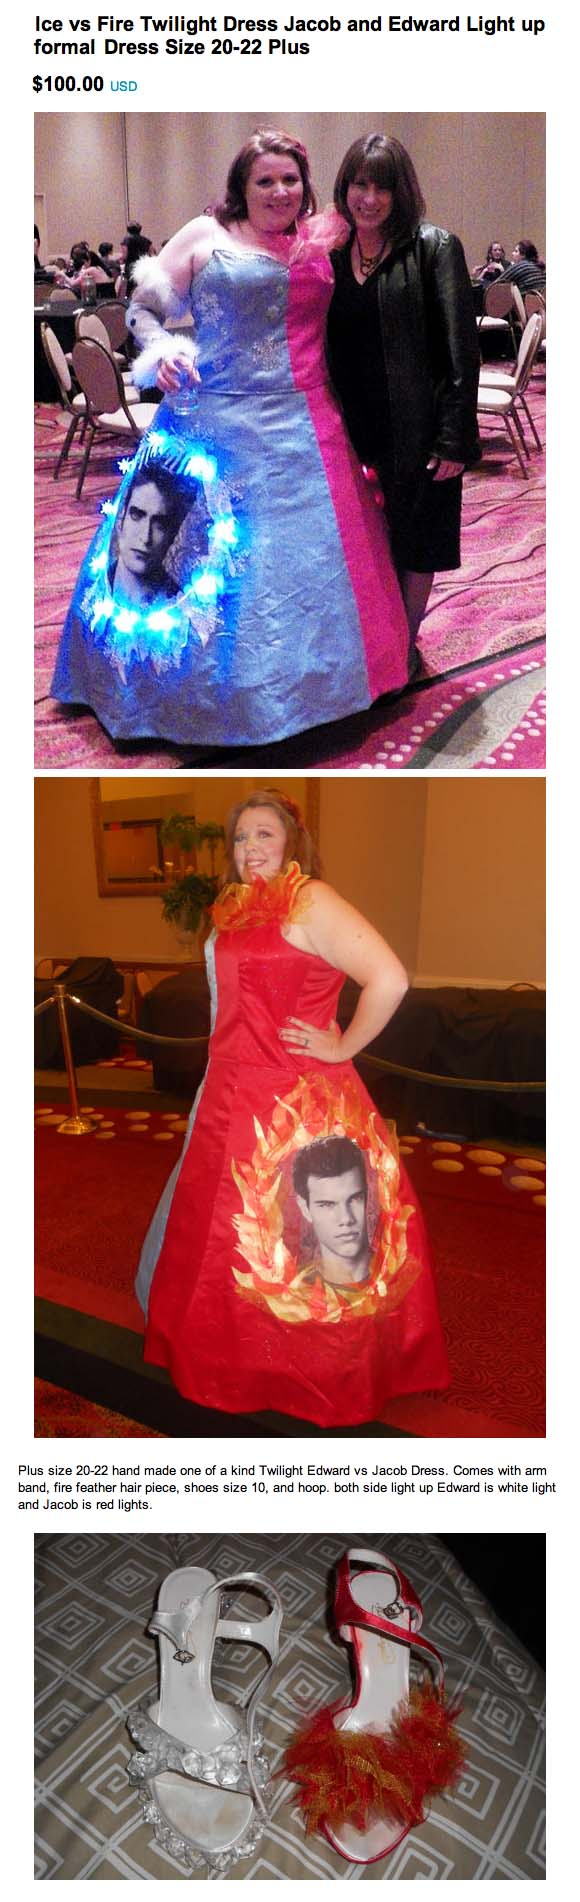 Twilight Prom Dress Unmitigated Proof the Apocalypse is Nigh